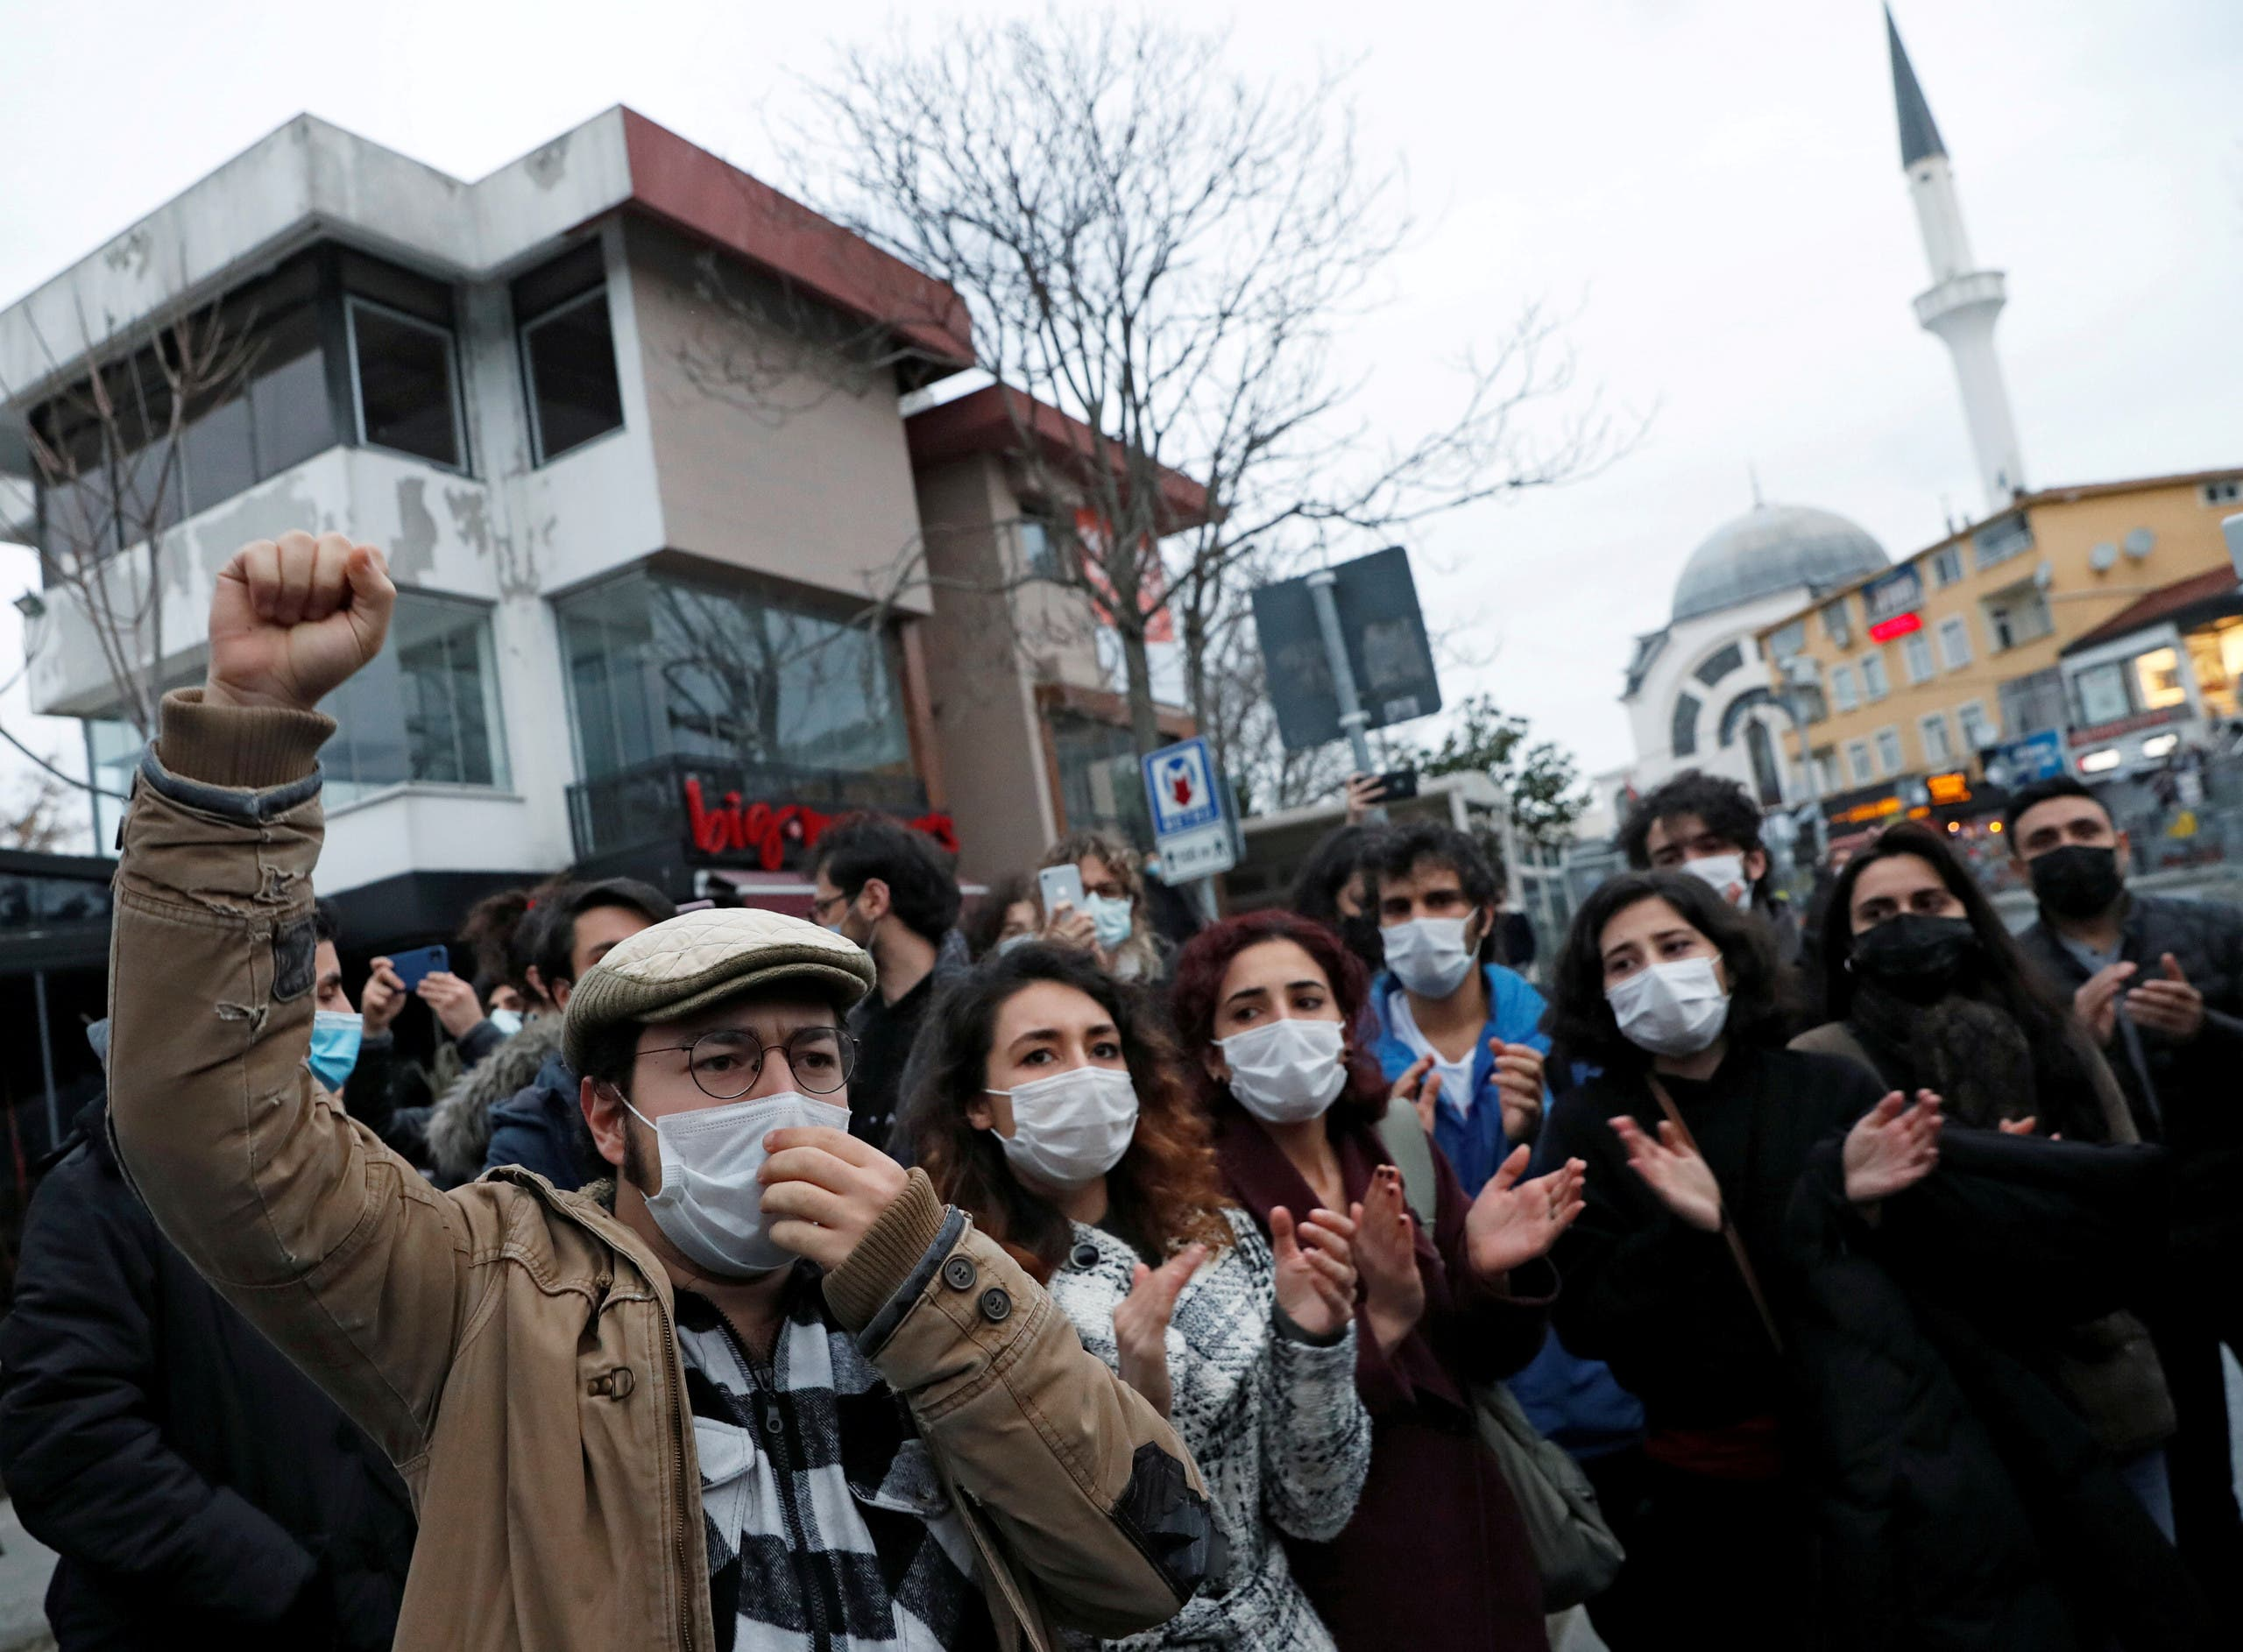 Students shout slogans as they wait in front of the Bogazici University in solidarity with fellow students inside the campus who are protesting against the new rector and the arrest of two students, in Istanbul, Turkey February 1, 2021. (Reuters)